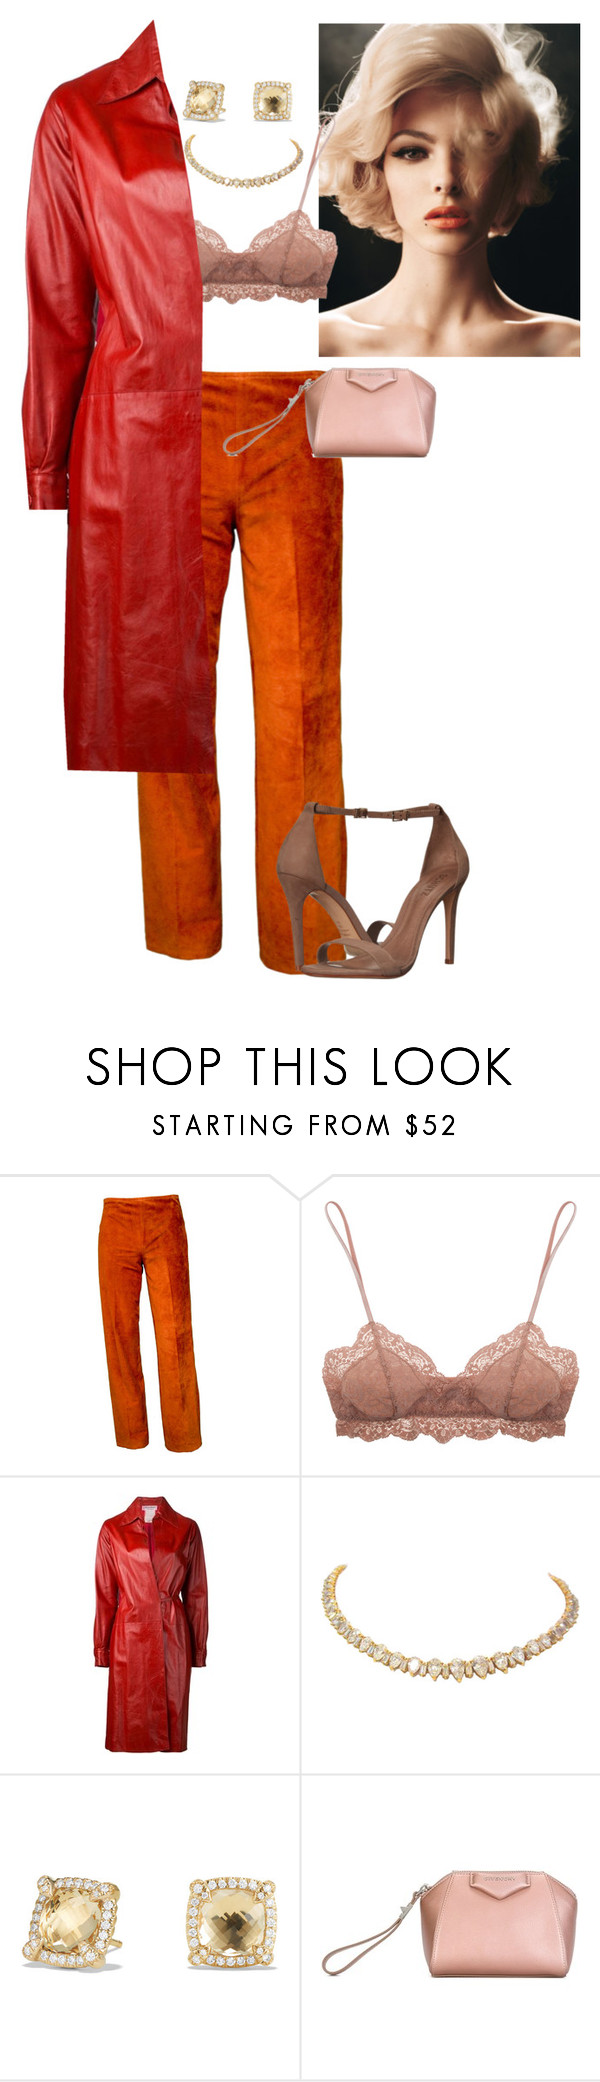 """Untitled #324"" by californiamariposa ❤ liked on Polyvore featuring Eberjey, Yves Saint Laurent, David Yurman, Givenchy and Schutz"